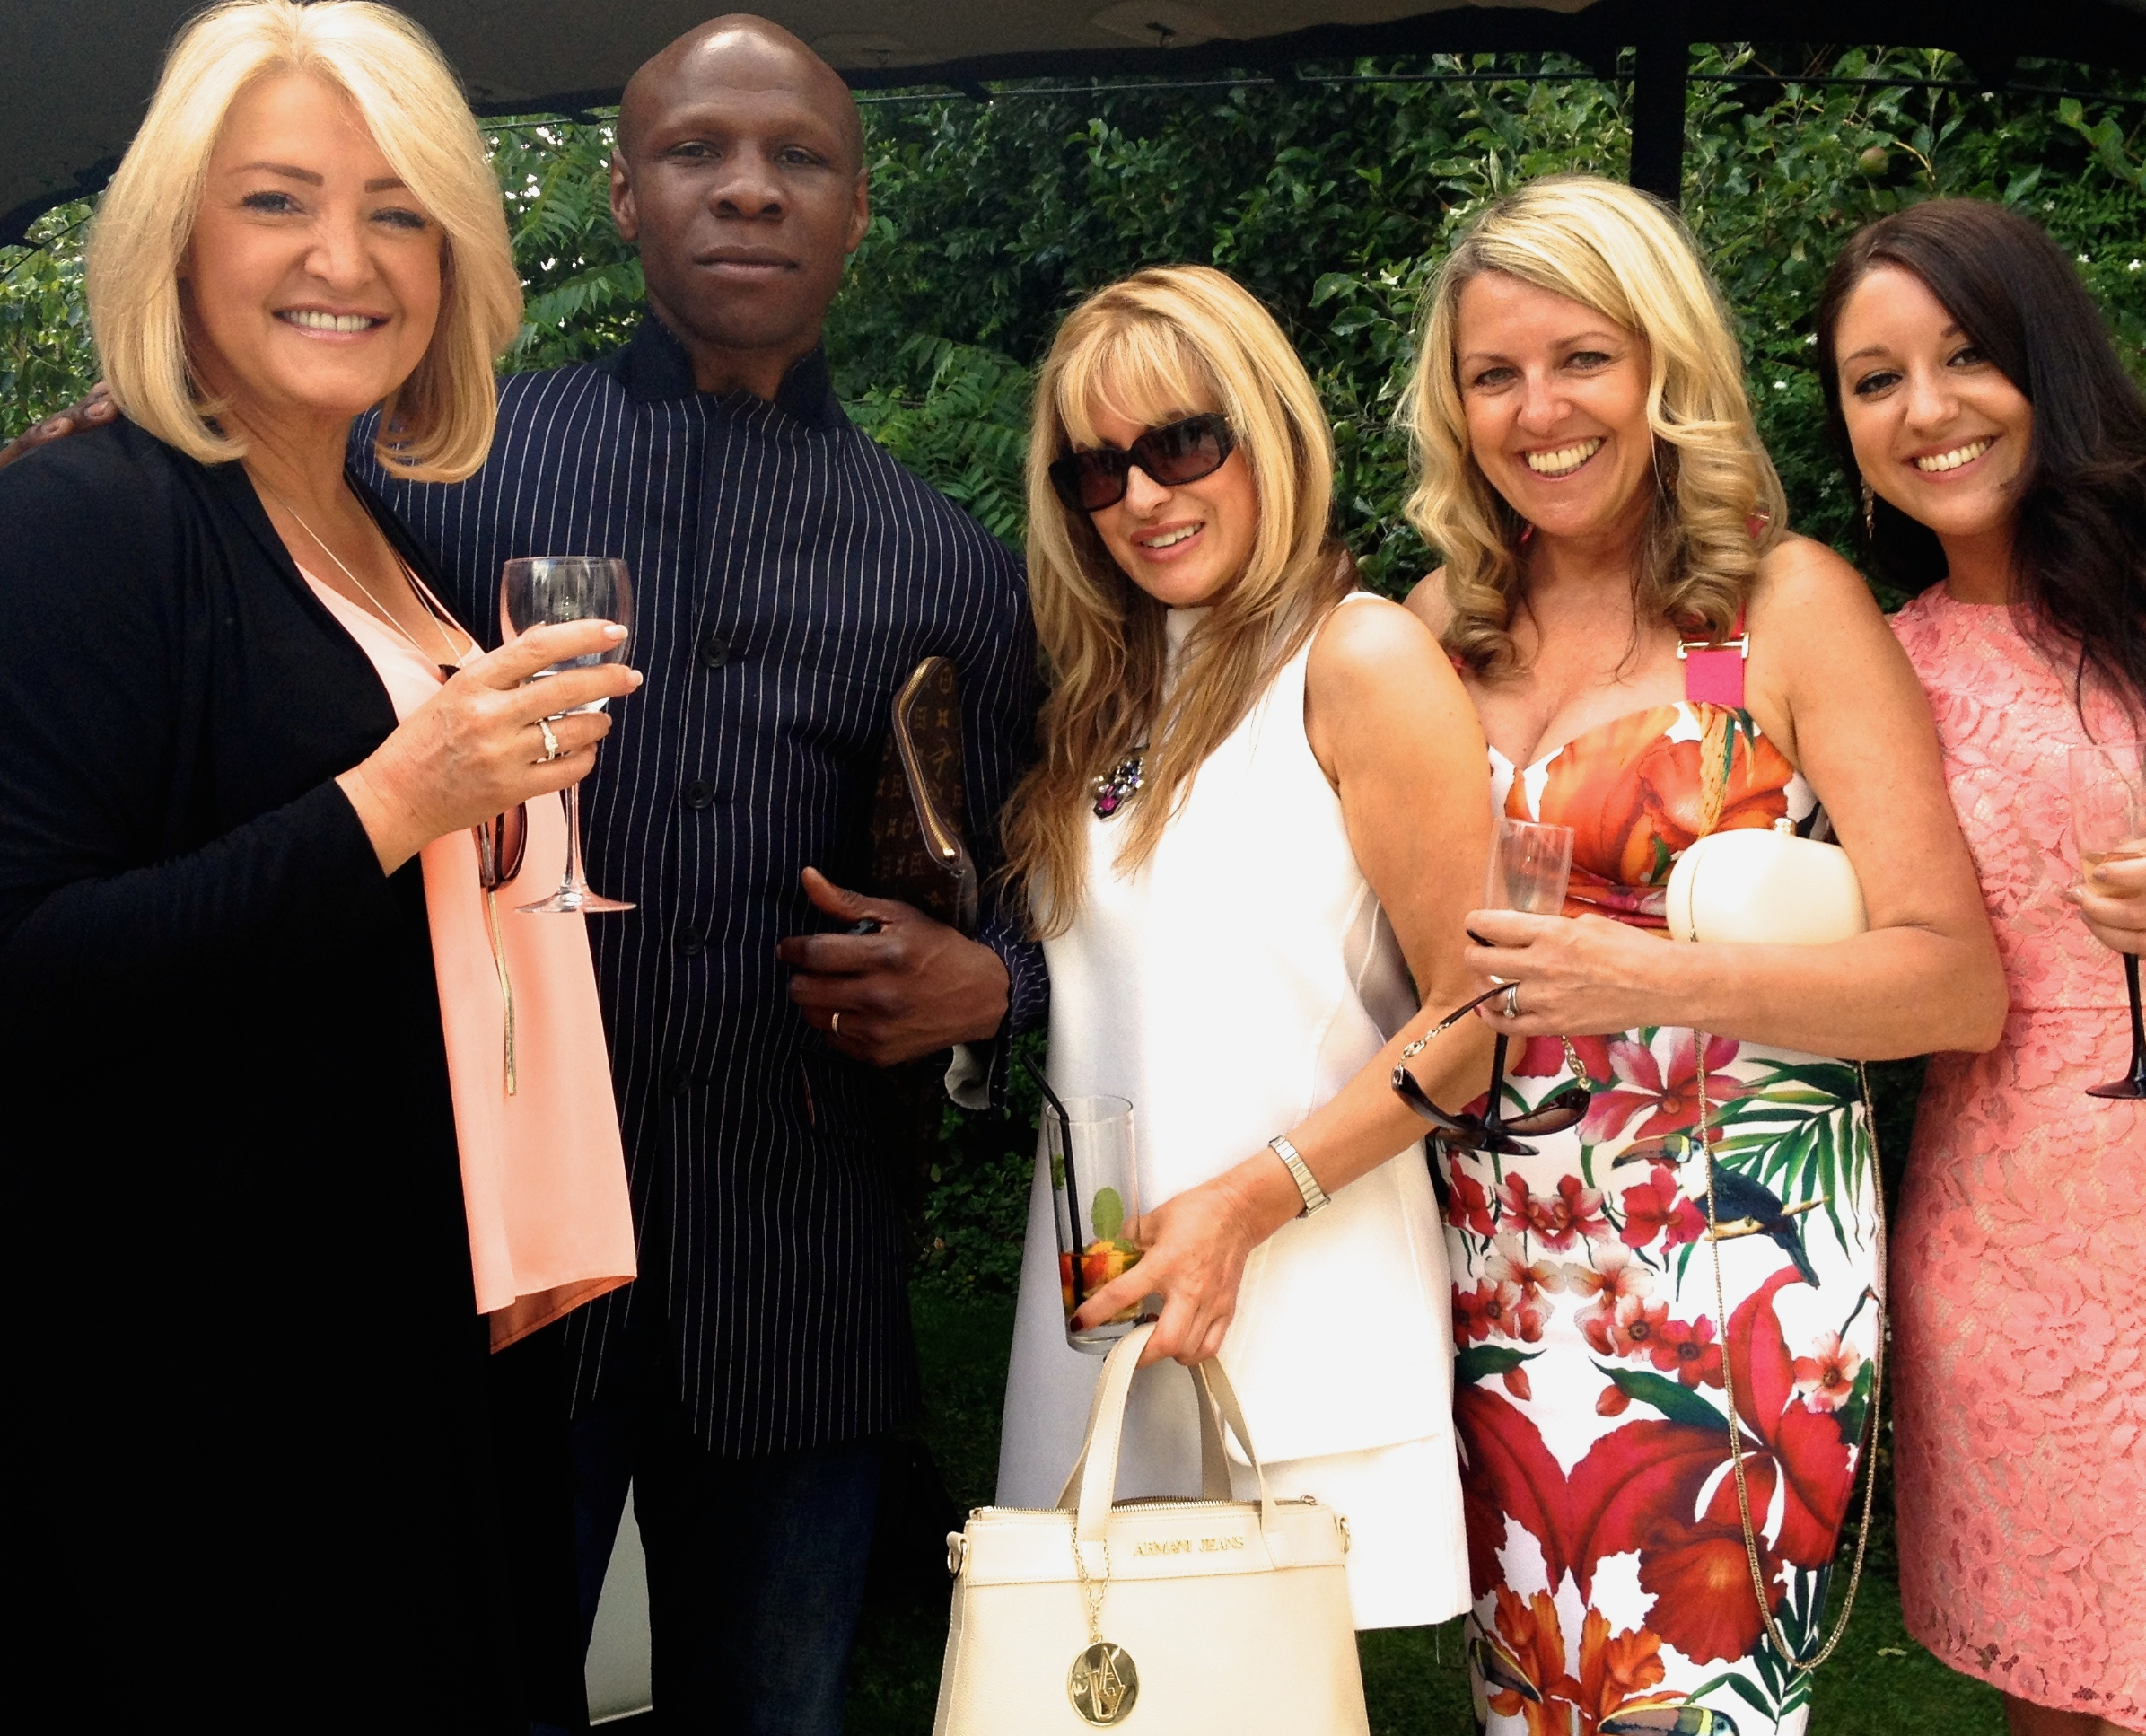 single women in eubank Chris eubank, 50, is set to 80% of women feeling unable to cope reveals study that shows men are she waits for her car after lunch date newly-single starlet.